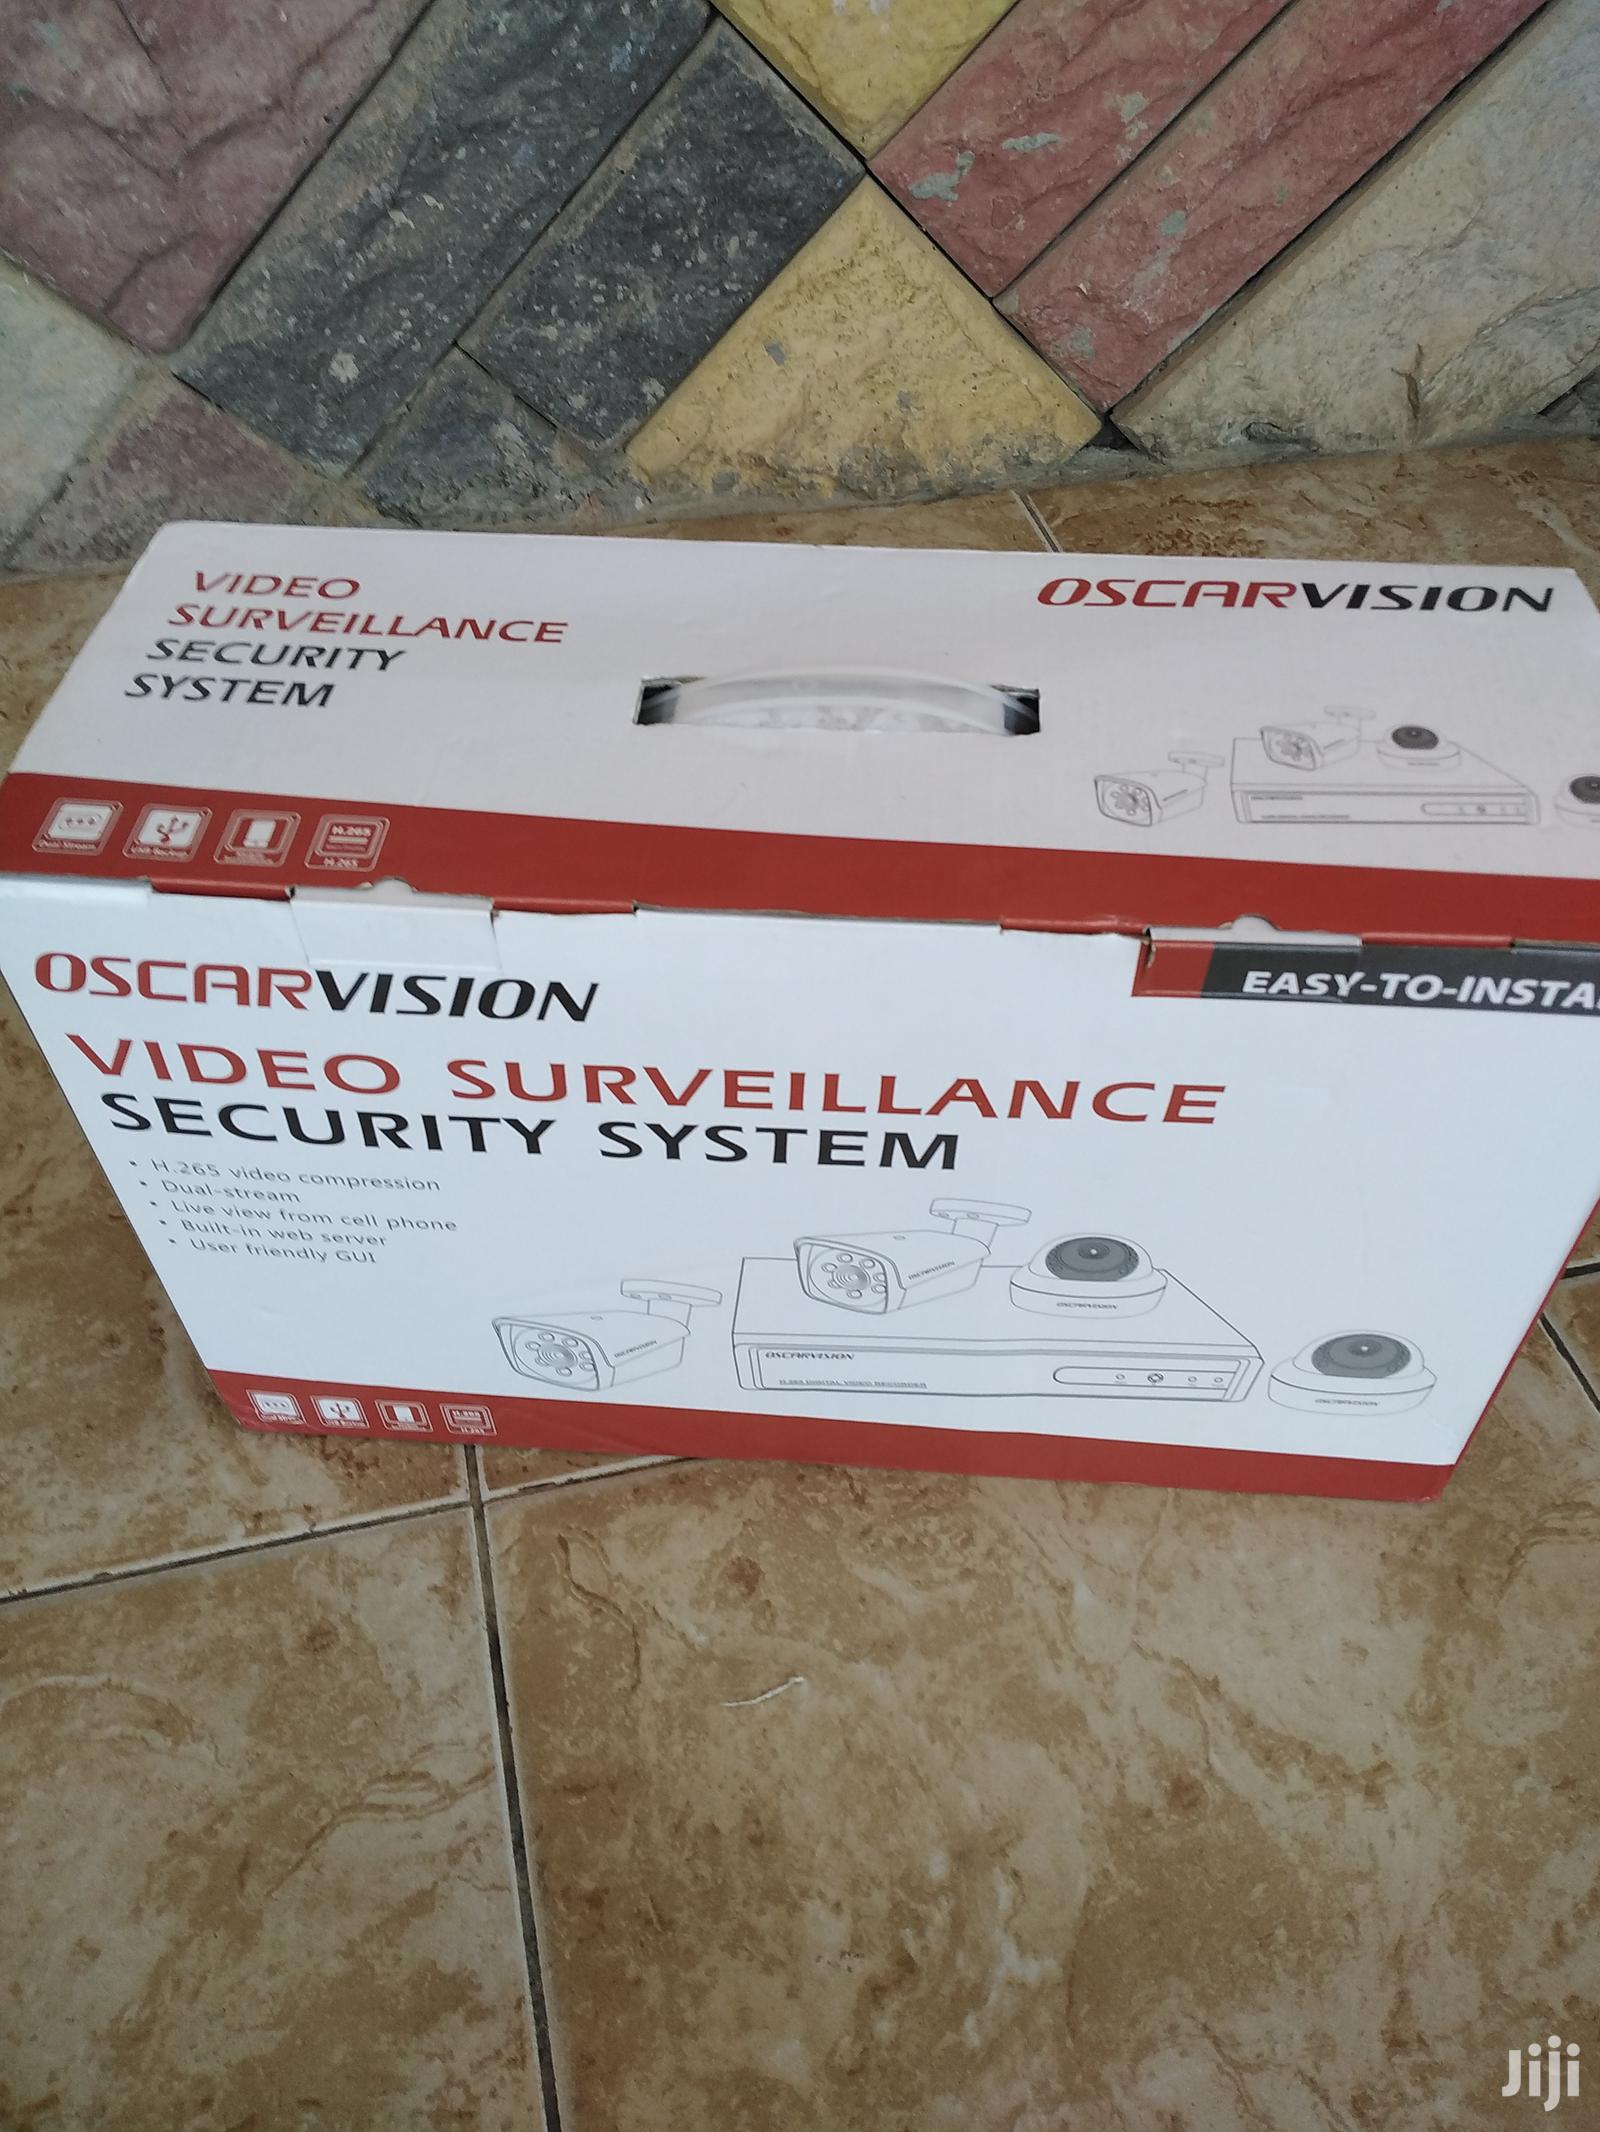 CCTV Camera 4 Channels Oscarvision | Security & Surveillance for sale in Bubuashie, Greater Accra, Ghana